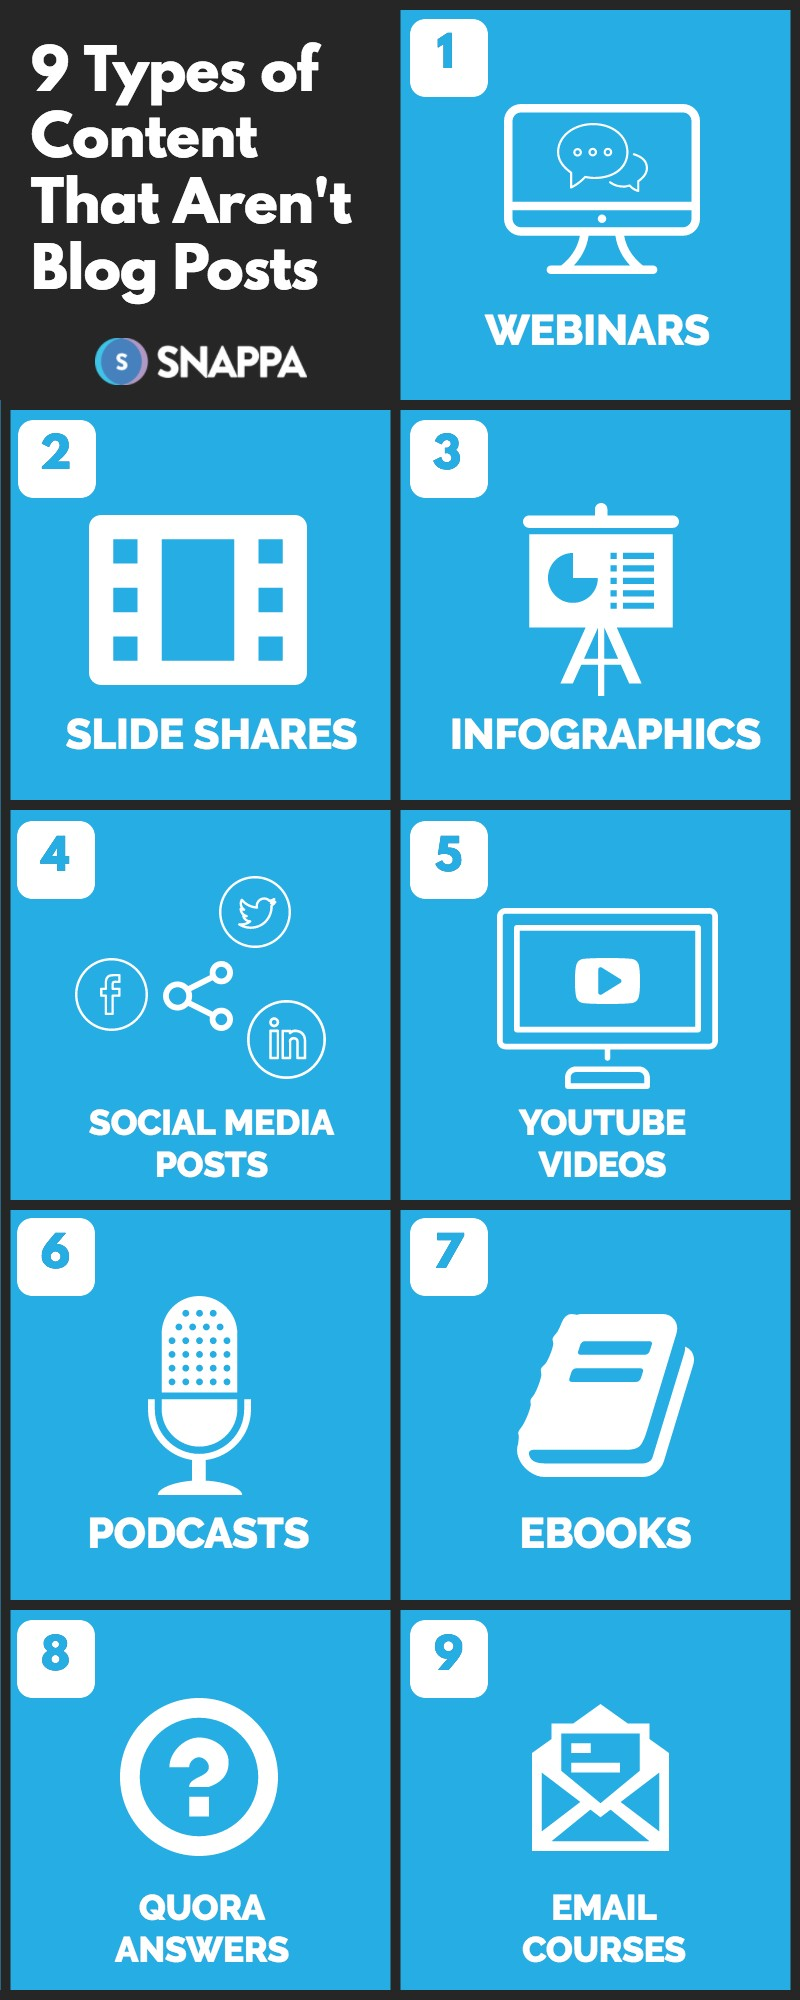 9 types of content that aren't blog posts and why they matter